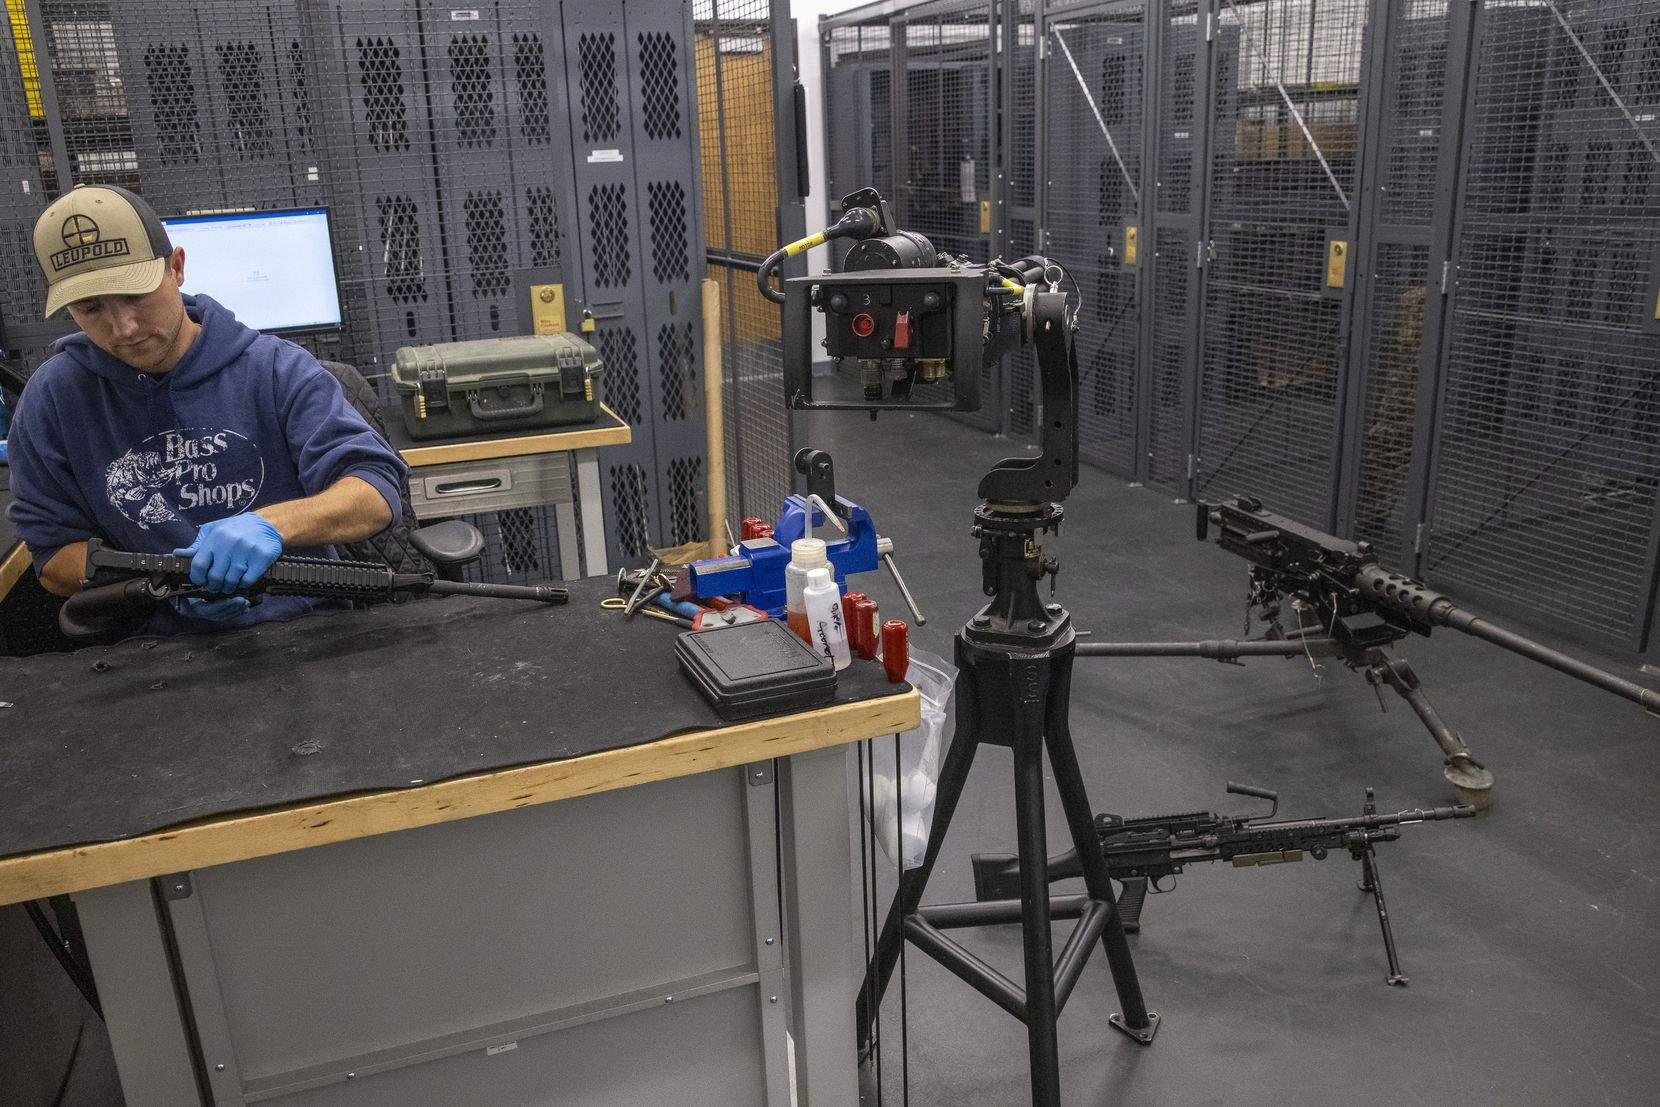 Armory supervisor Jake Evans services weapons at the armory of the True Velocity manufacturing center in Garland.